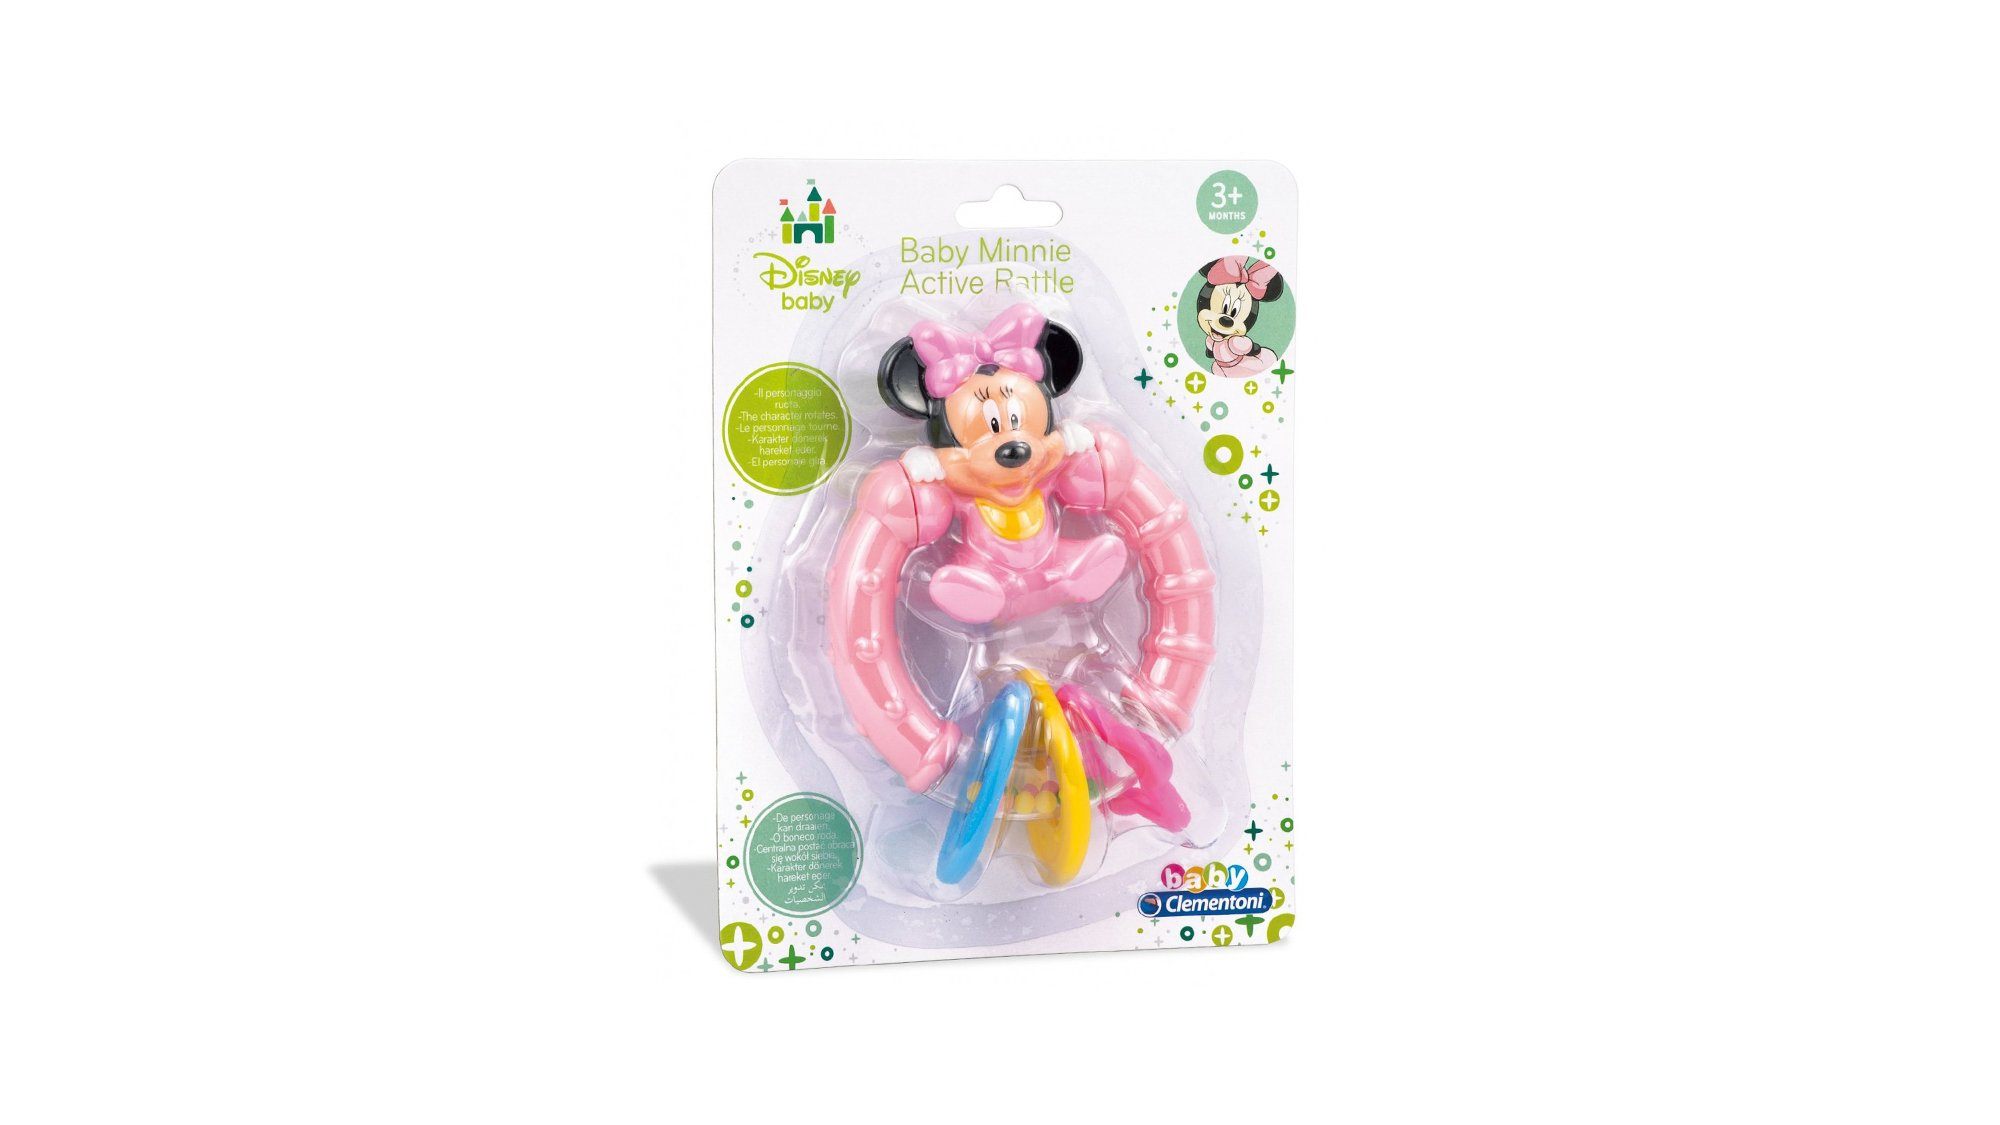 Clementoni Rattle for Babies